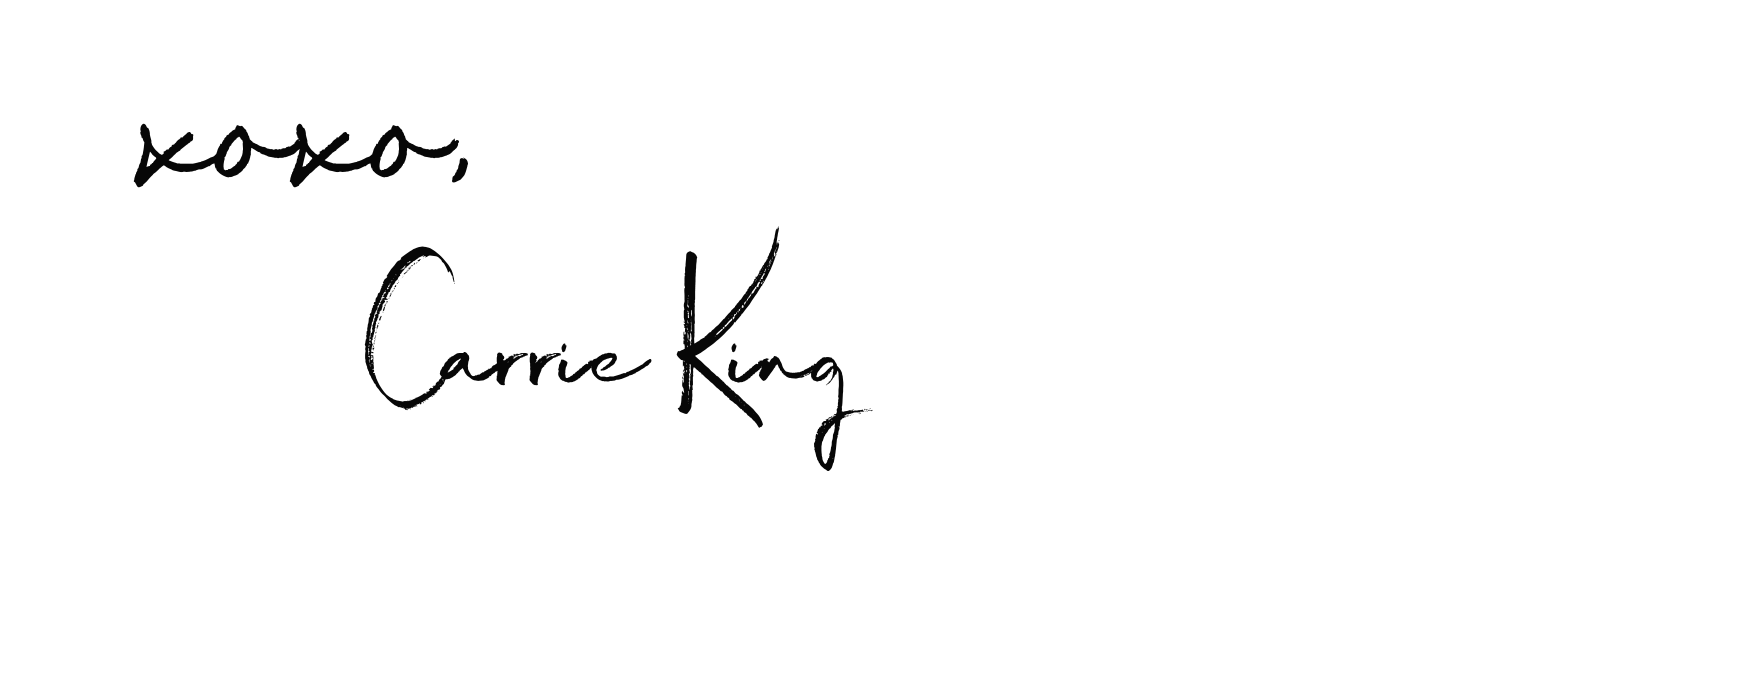 Carrie King Photographer signature2.png